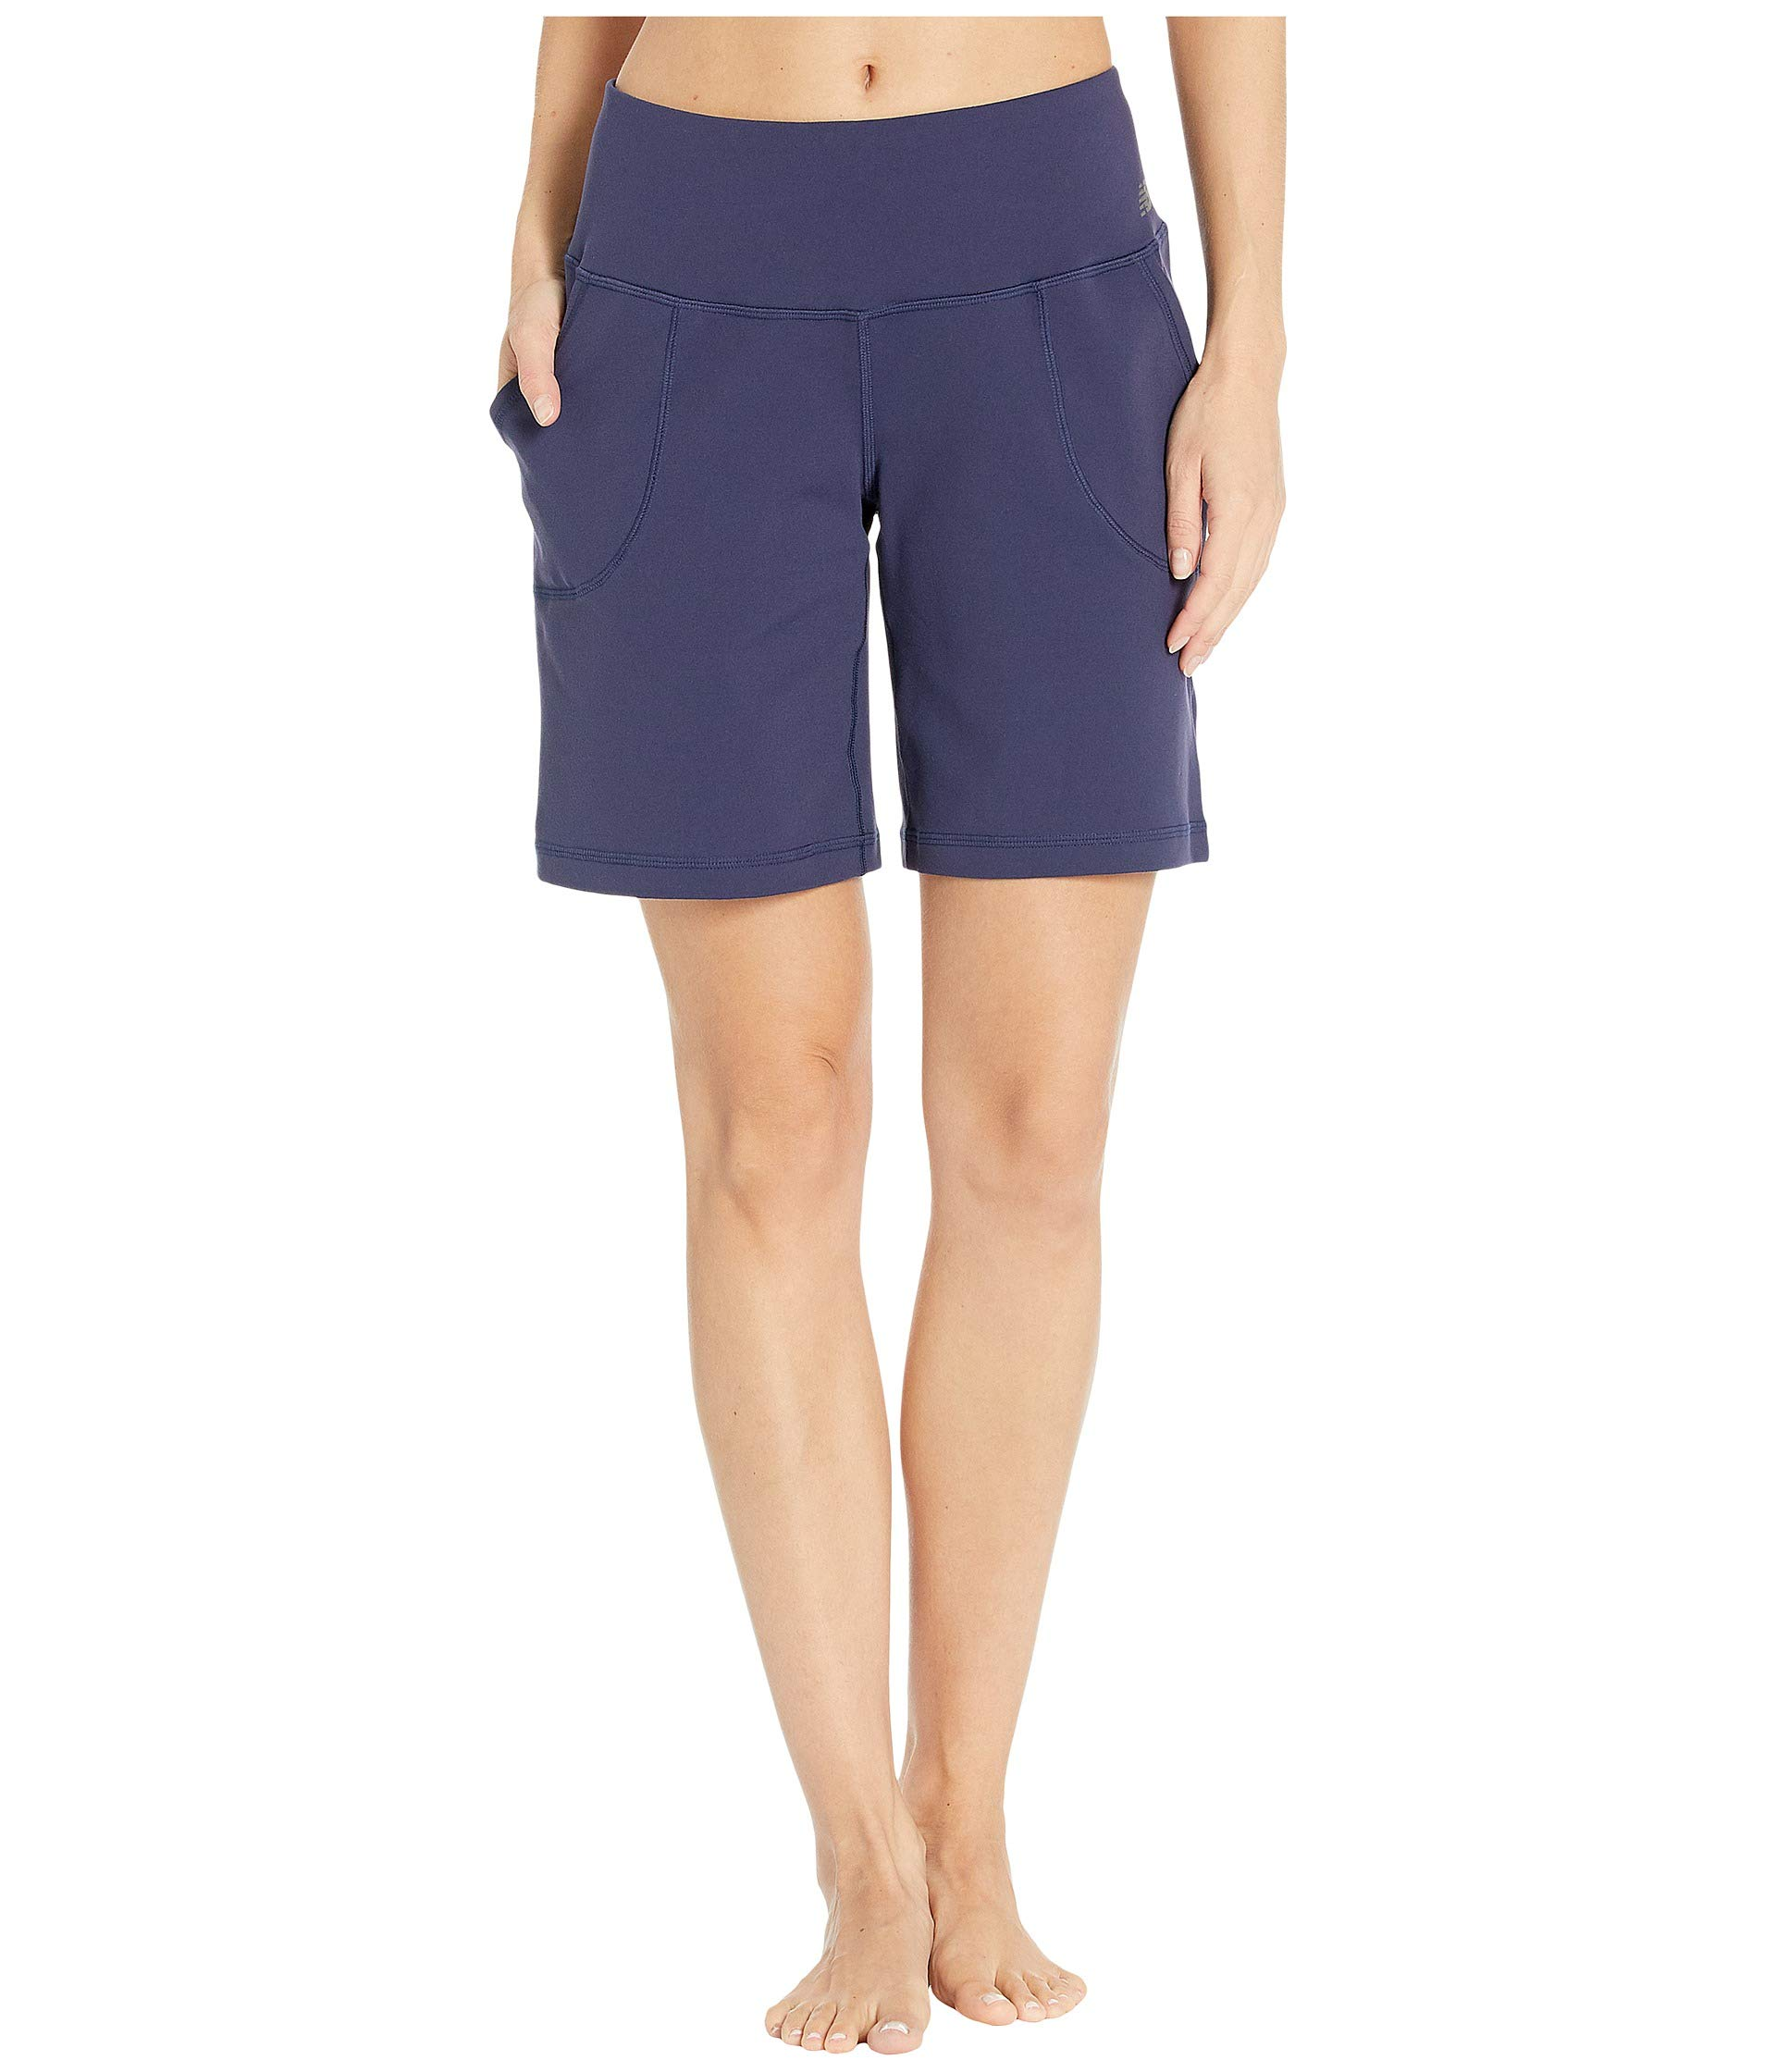 New Balance Women's Premium Performance 8'' Short Pigment X-Large 8 by New Balance